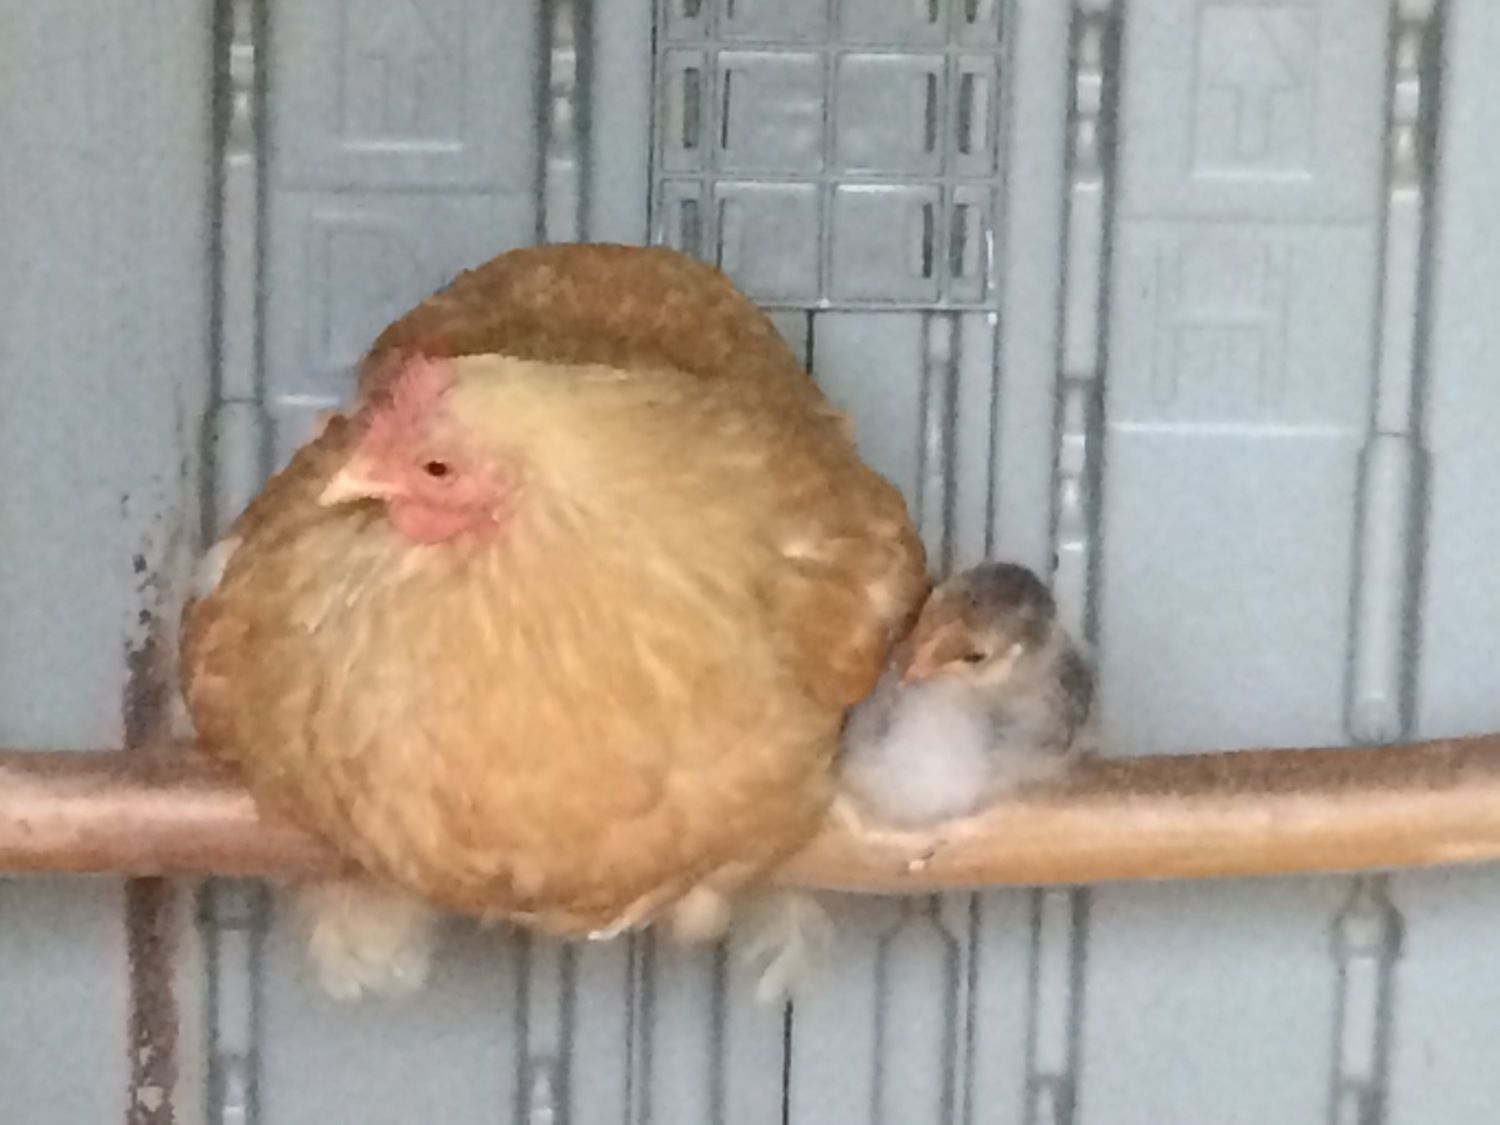 Chick on the top rung